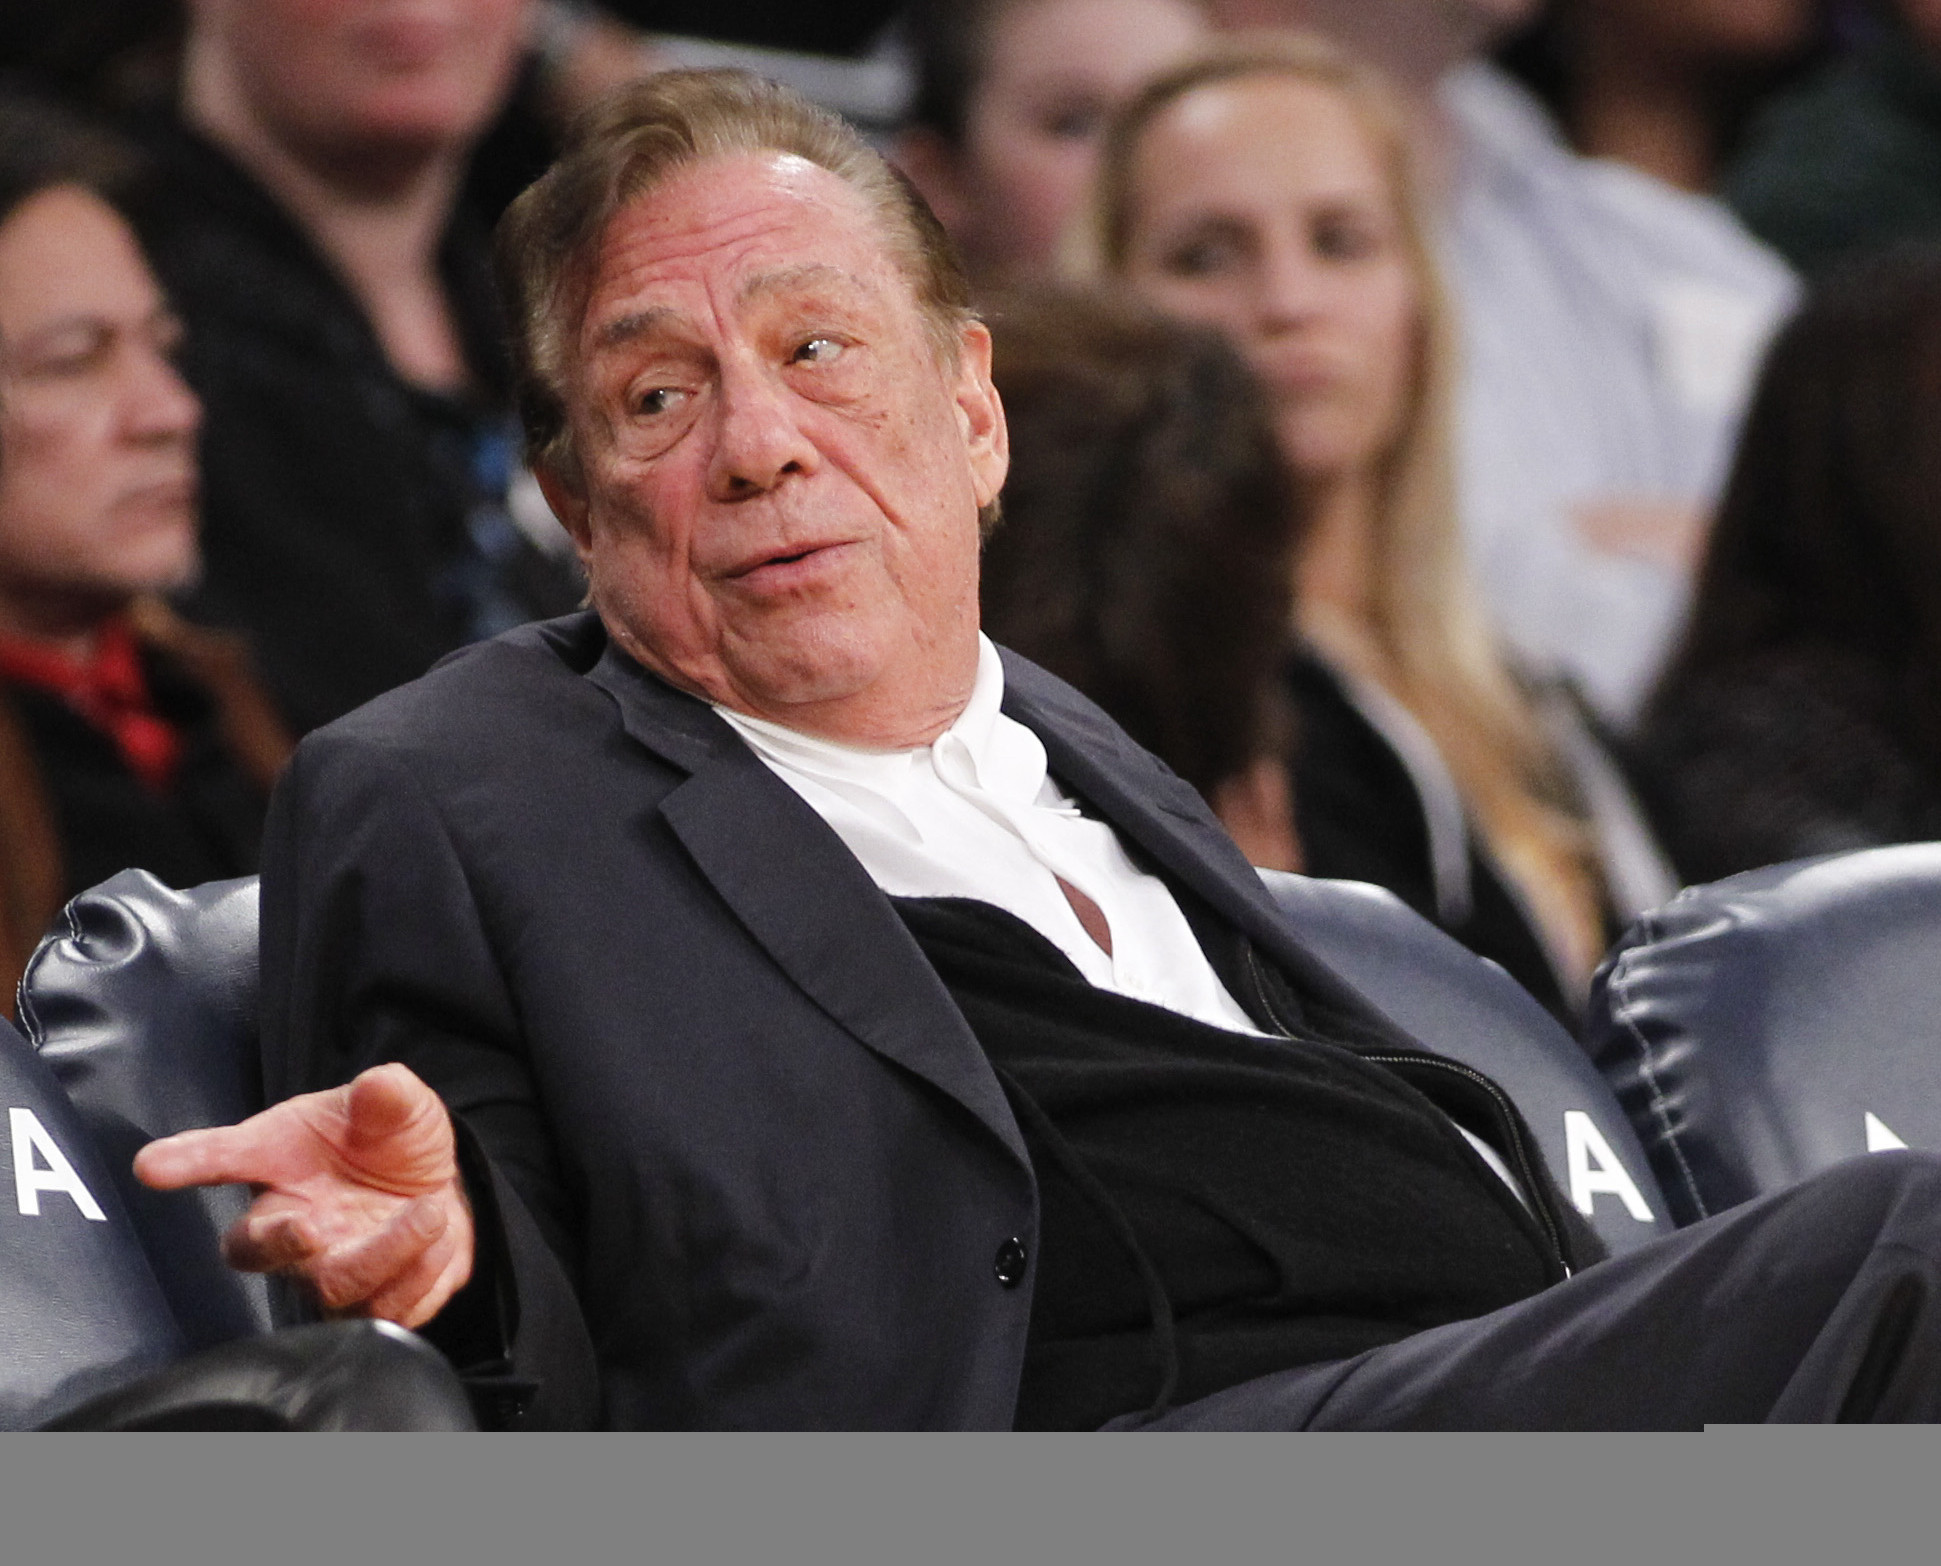 Donald Sterling calls wife 'pig' after her testimony in Clippers hearing